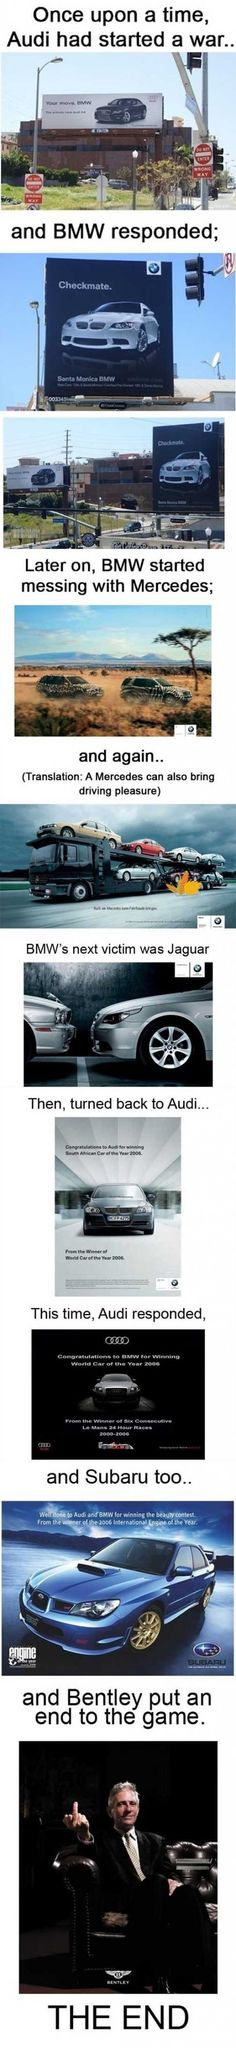 BMW's advertisement war